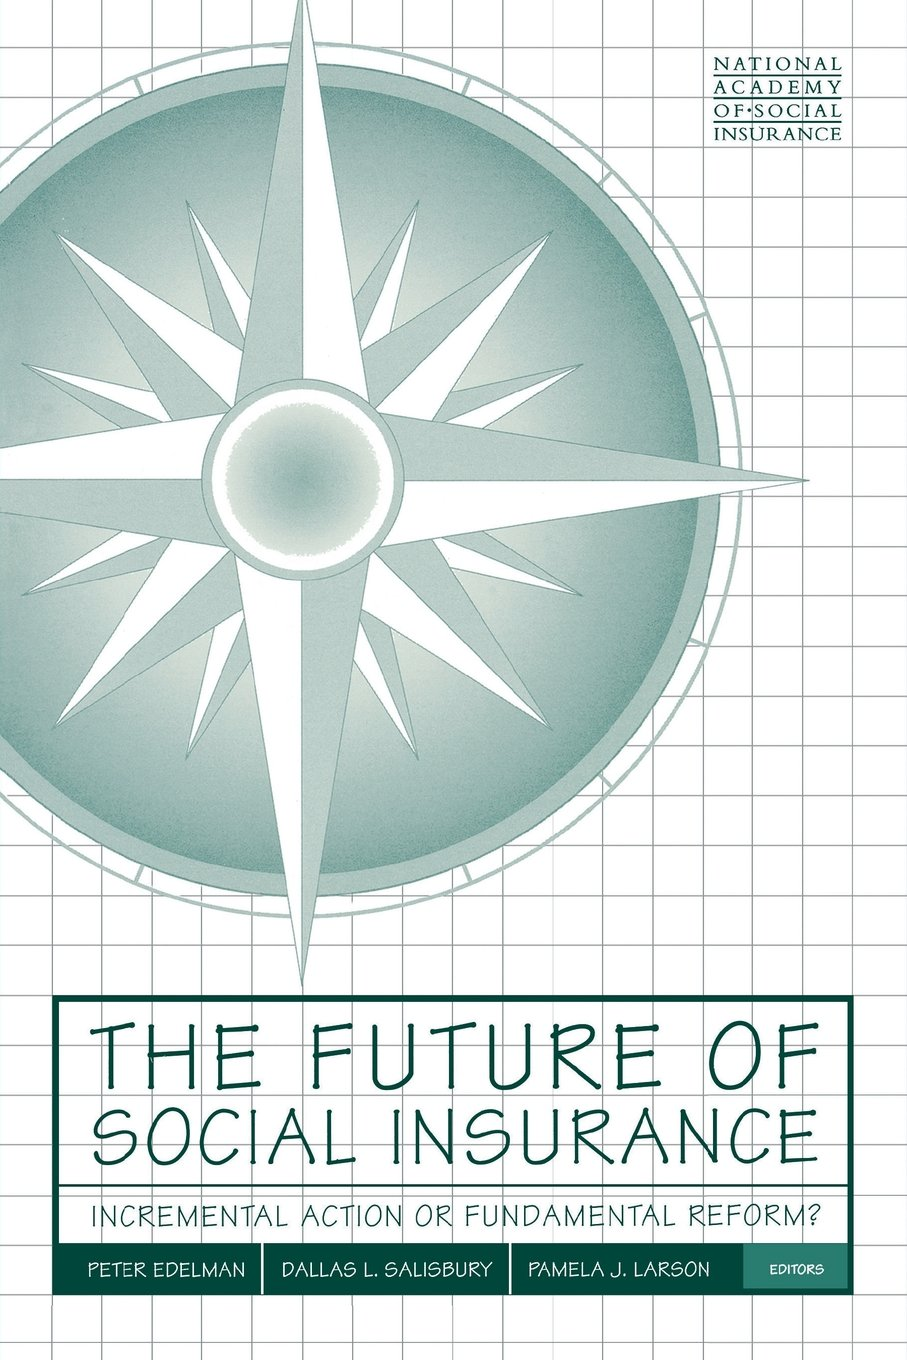 The Future of Social Insurance: Incremental Action or Fundamental Reform?